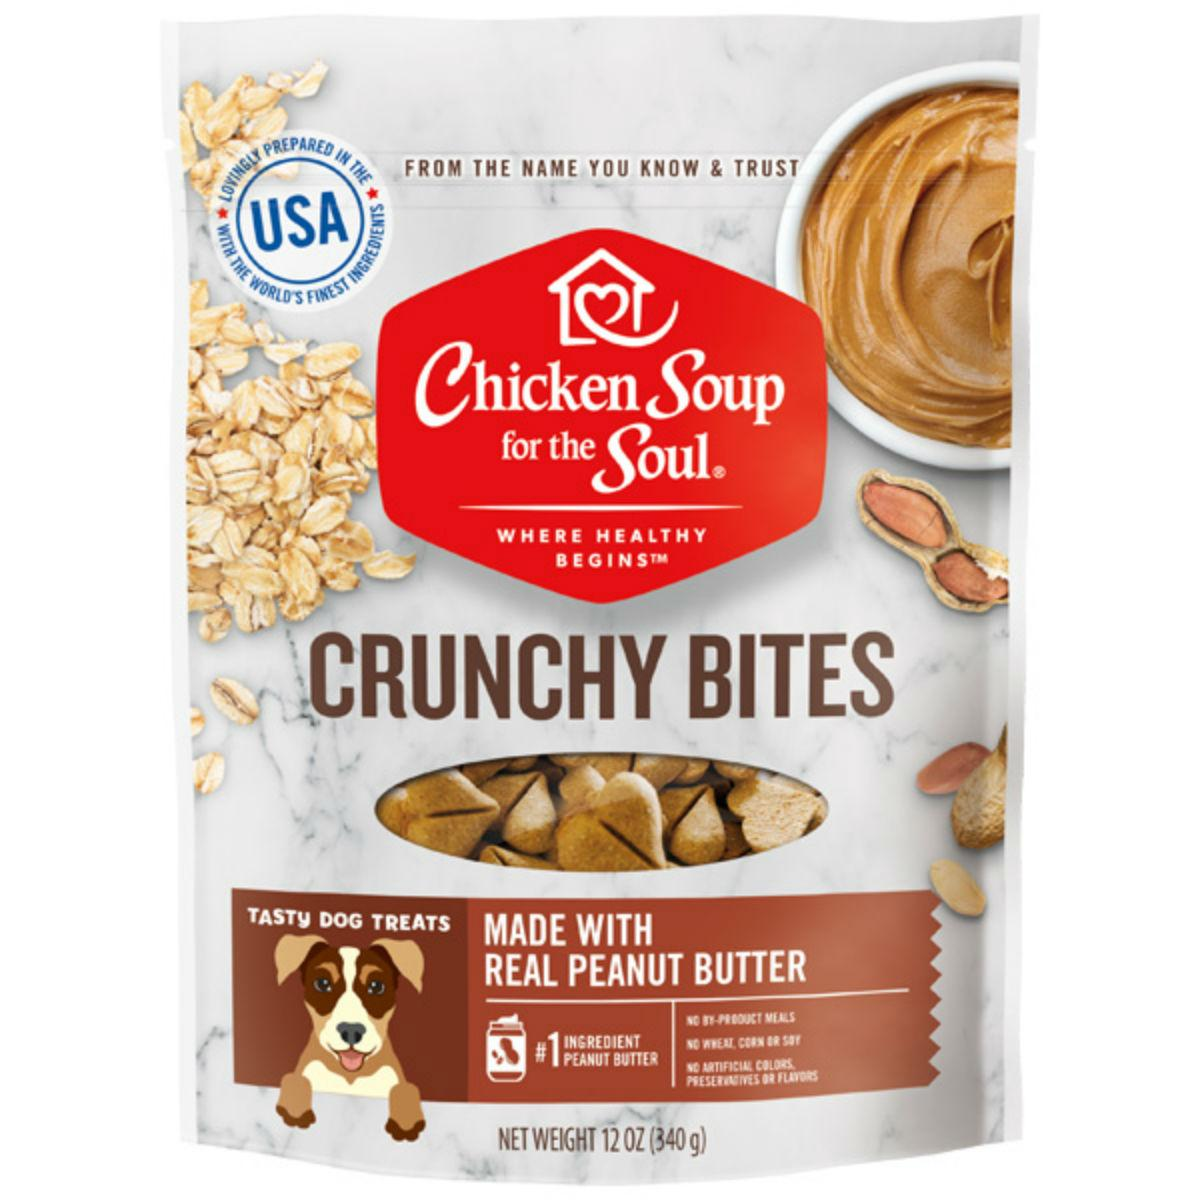 Chicken Soup for The Soul Crunchy Bites Dog Treats - Peanut Butter